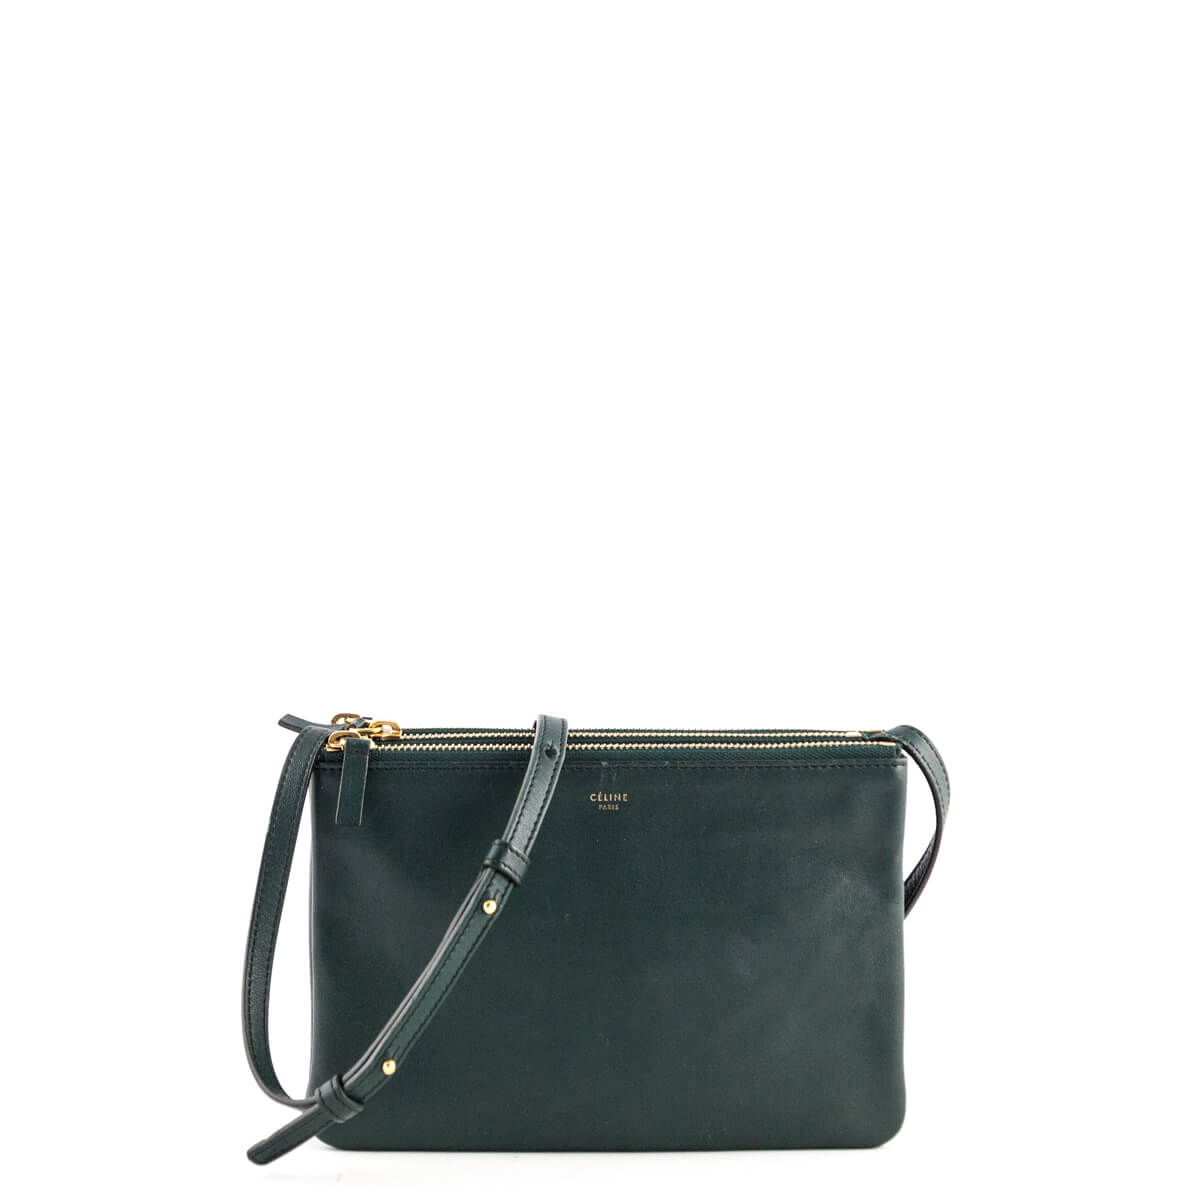 5e1c8521ae Celine Forest Green Lambskin Small Trio Crossbody - LOVE that BAG -  Preowned Authentic Designer Handbags ...